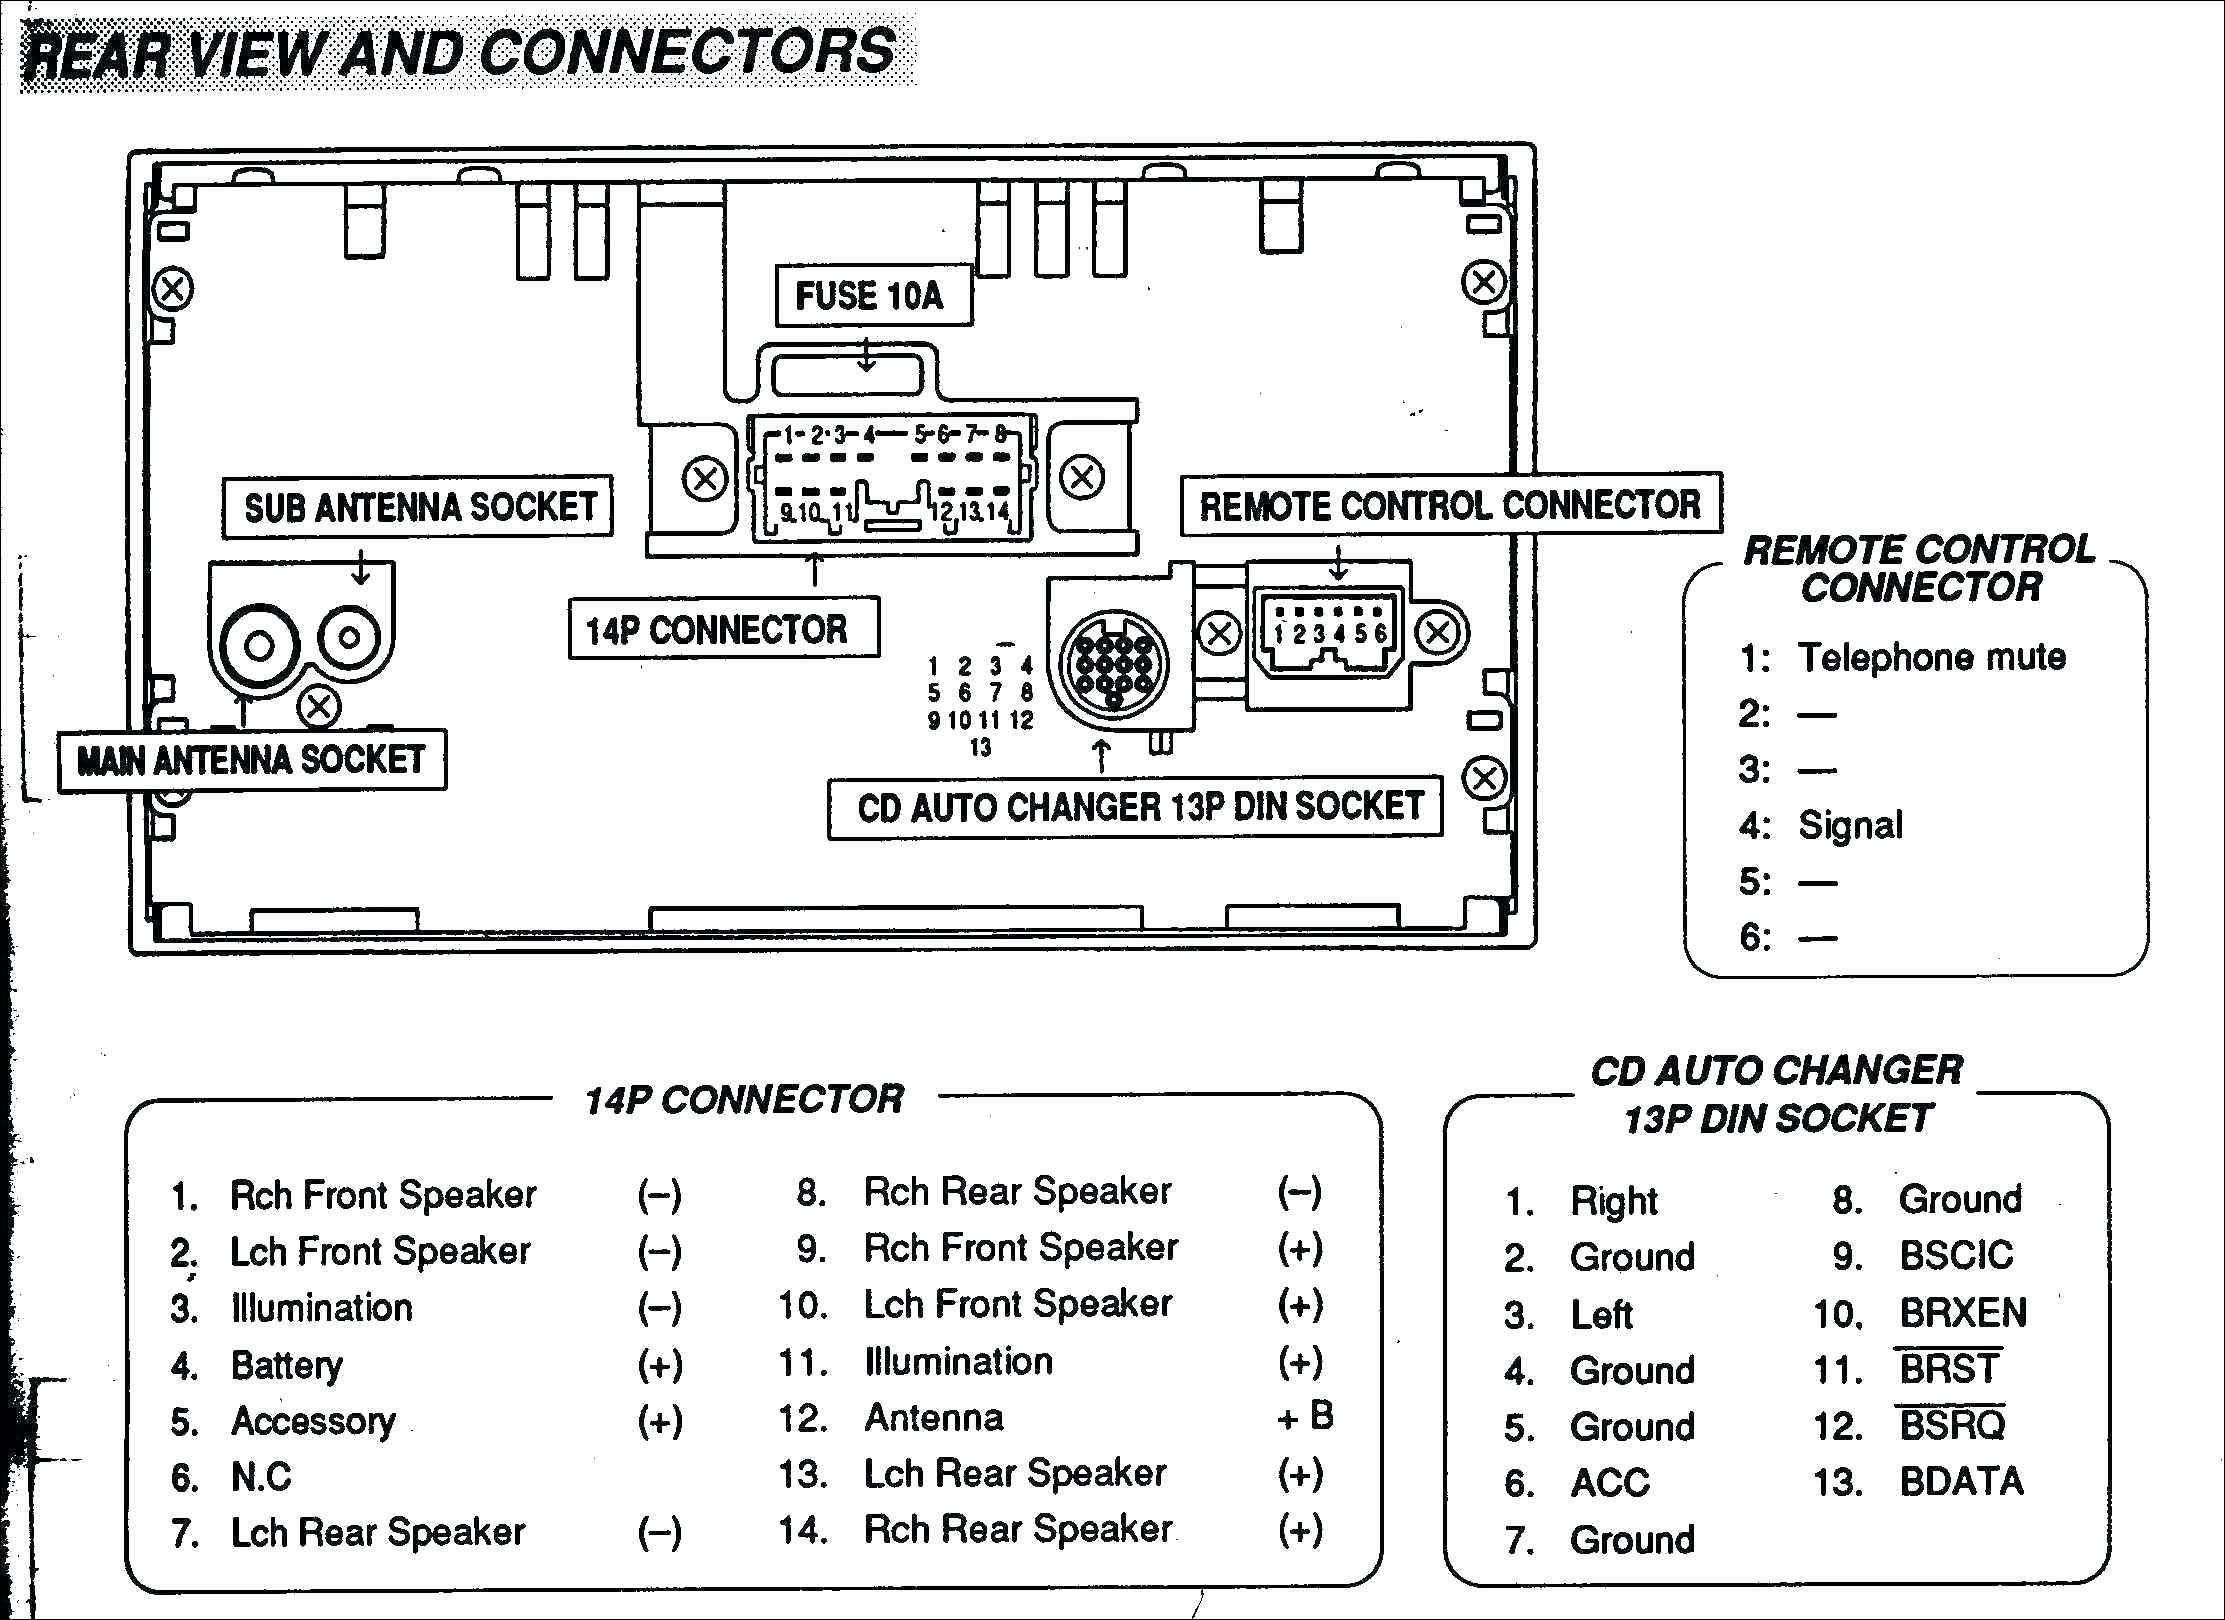 6 Subwoofer Wiring Diagram